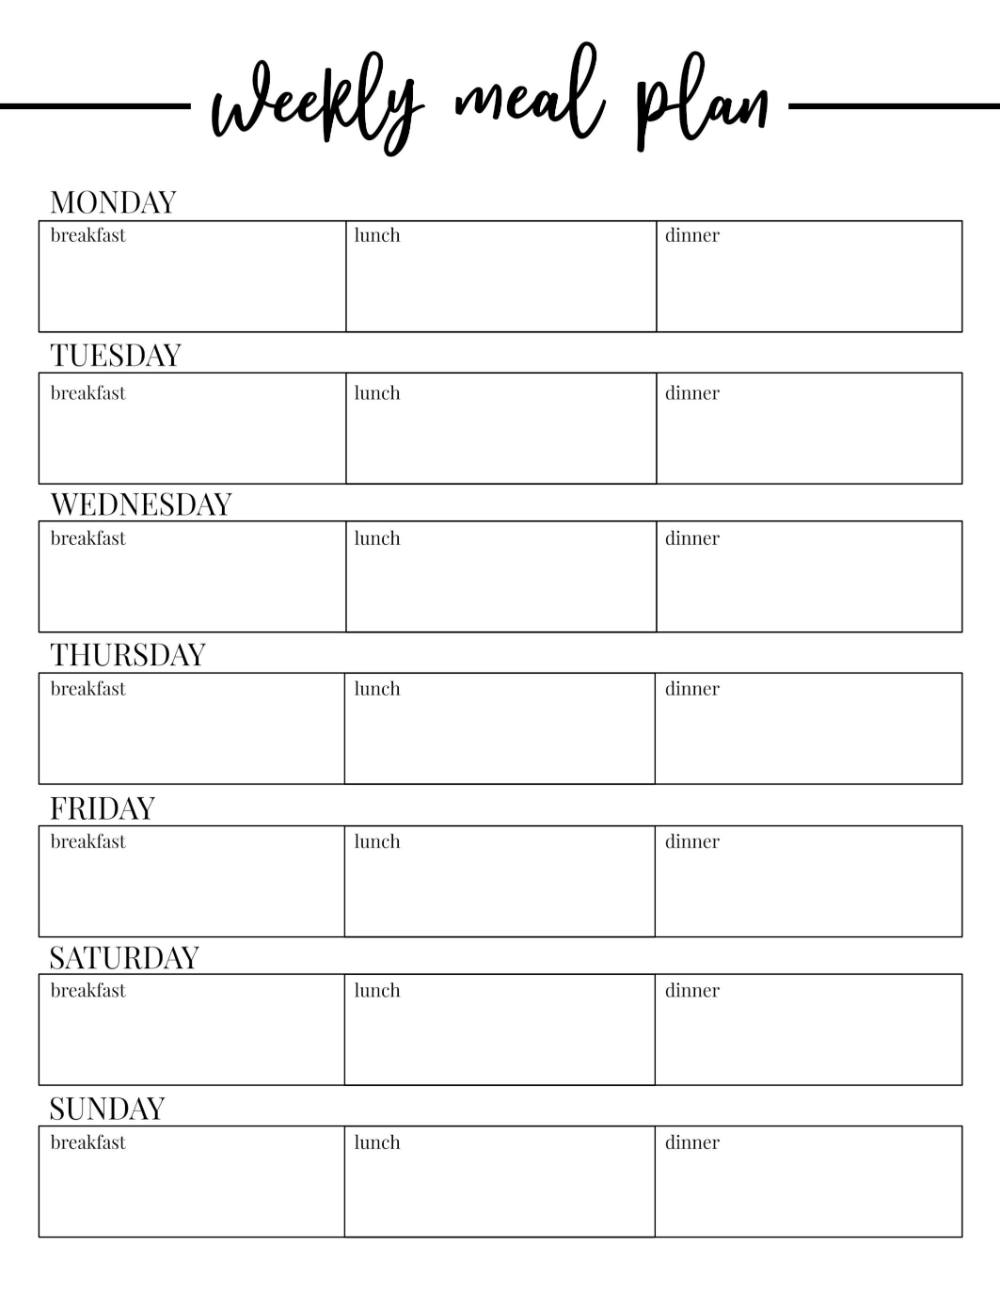 Monthly Meal Planner Template Free Printable - PRINTABLE RAHNAWARD Inside Weekly Meal Planner Template Word